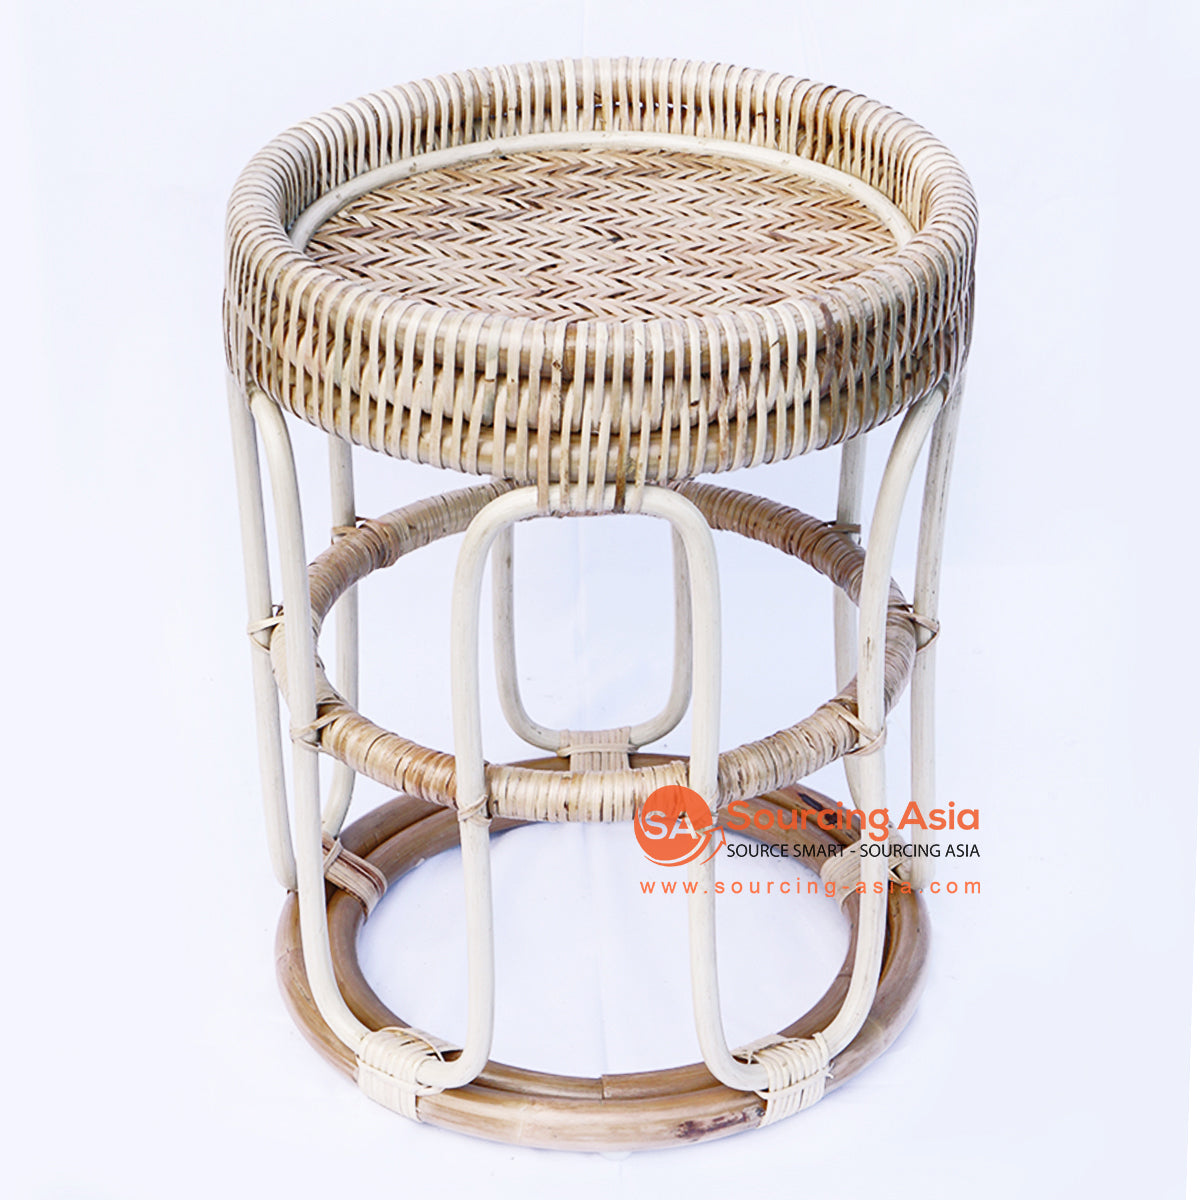 BNTC004-2 RATTAN TRAY/ SIDE TABLE